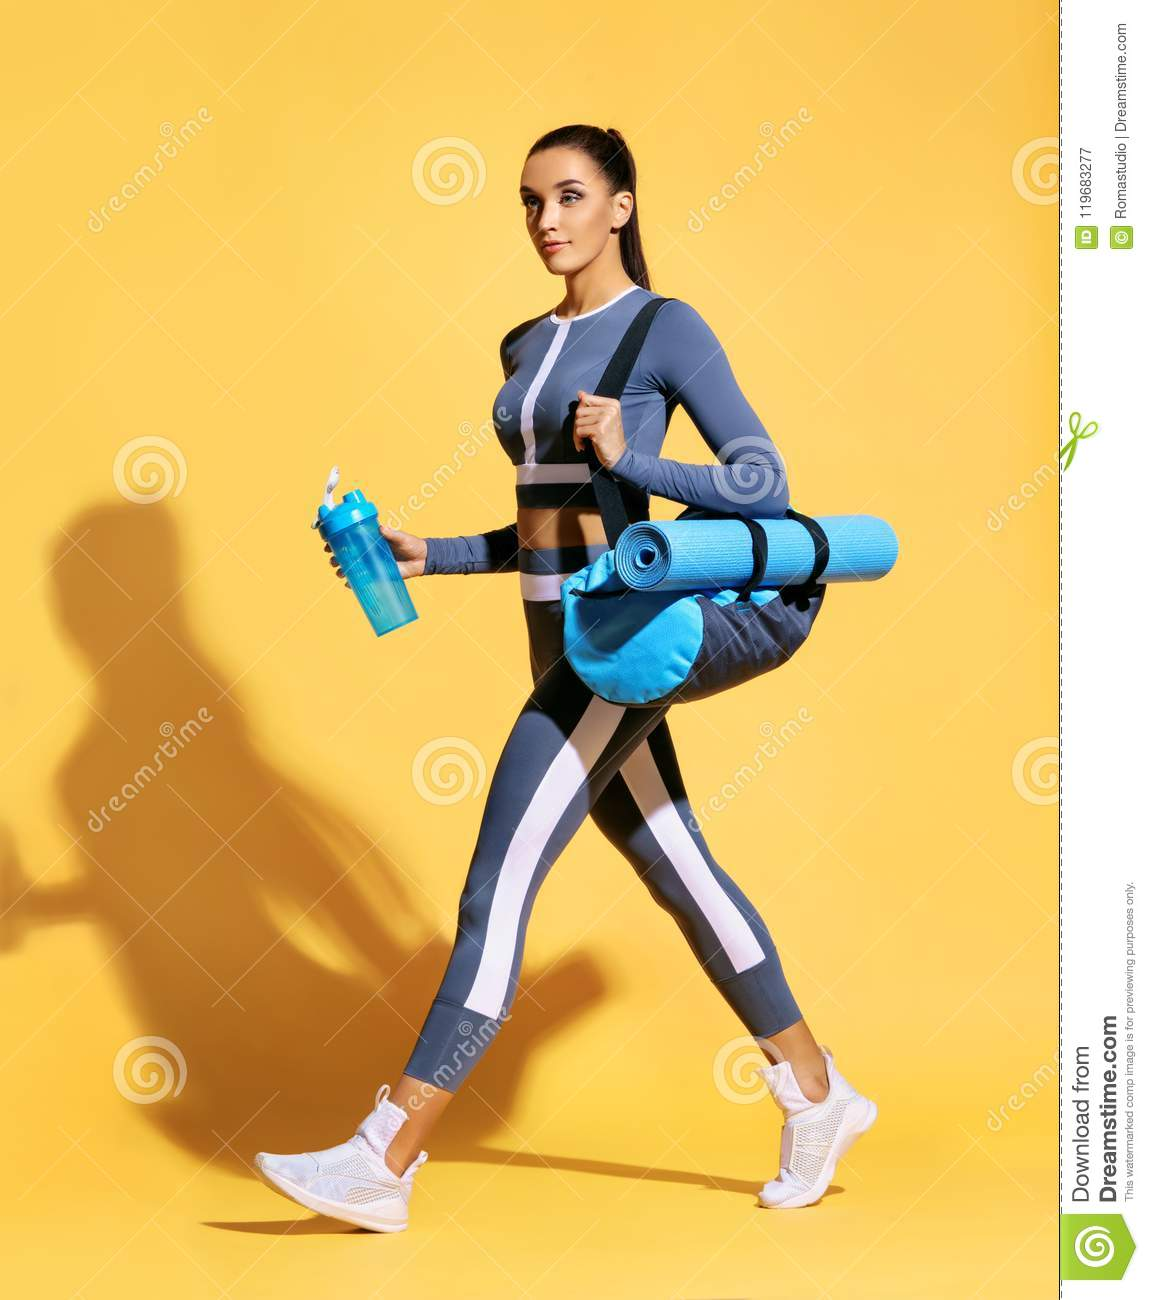 Attractive latin woman in fashionable sportswear on yellow background.